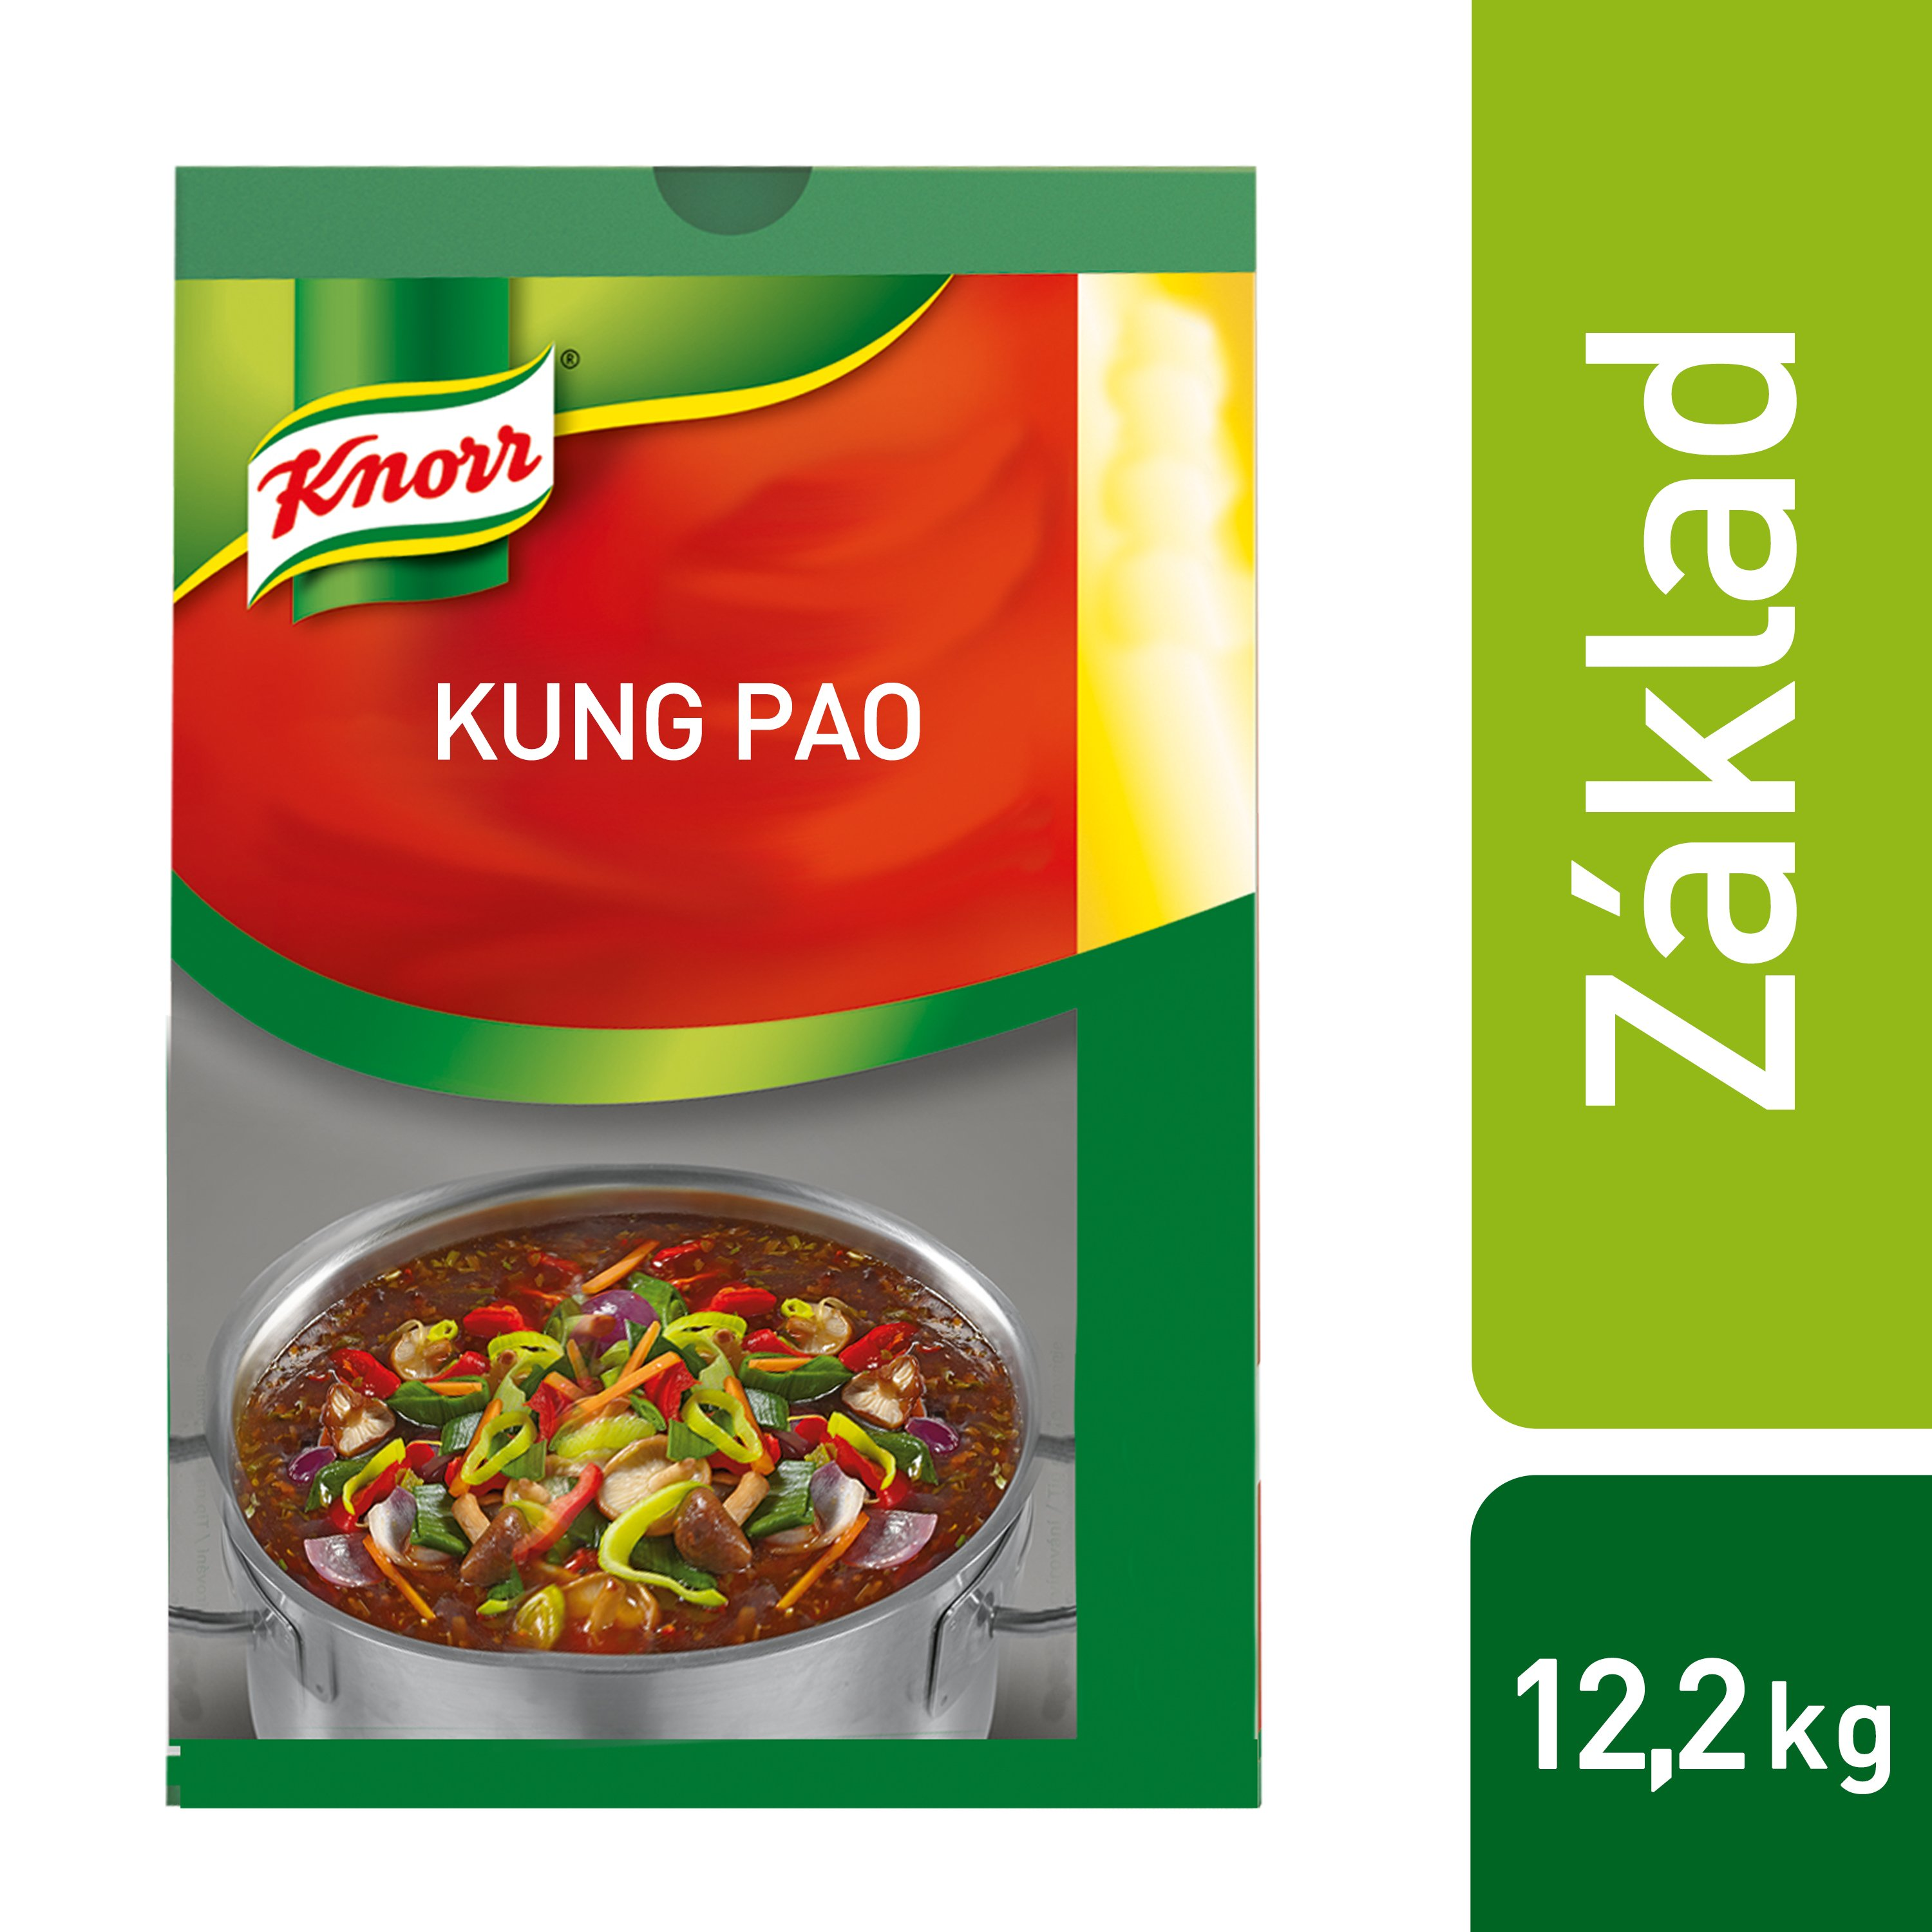 Knorr Základ na Kung Pao 1,5 kg -